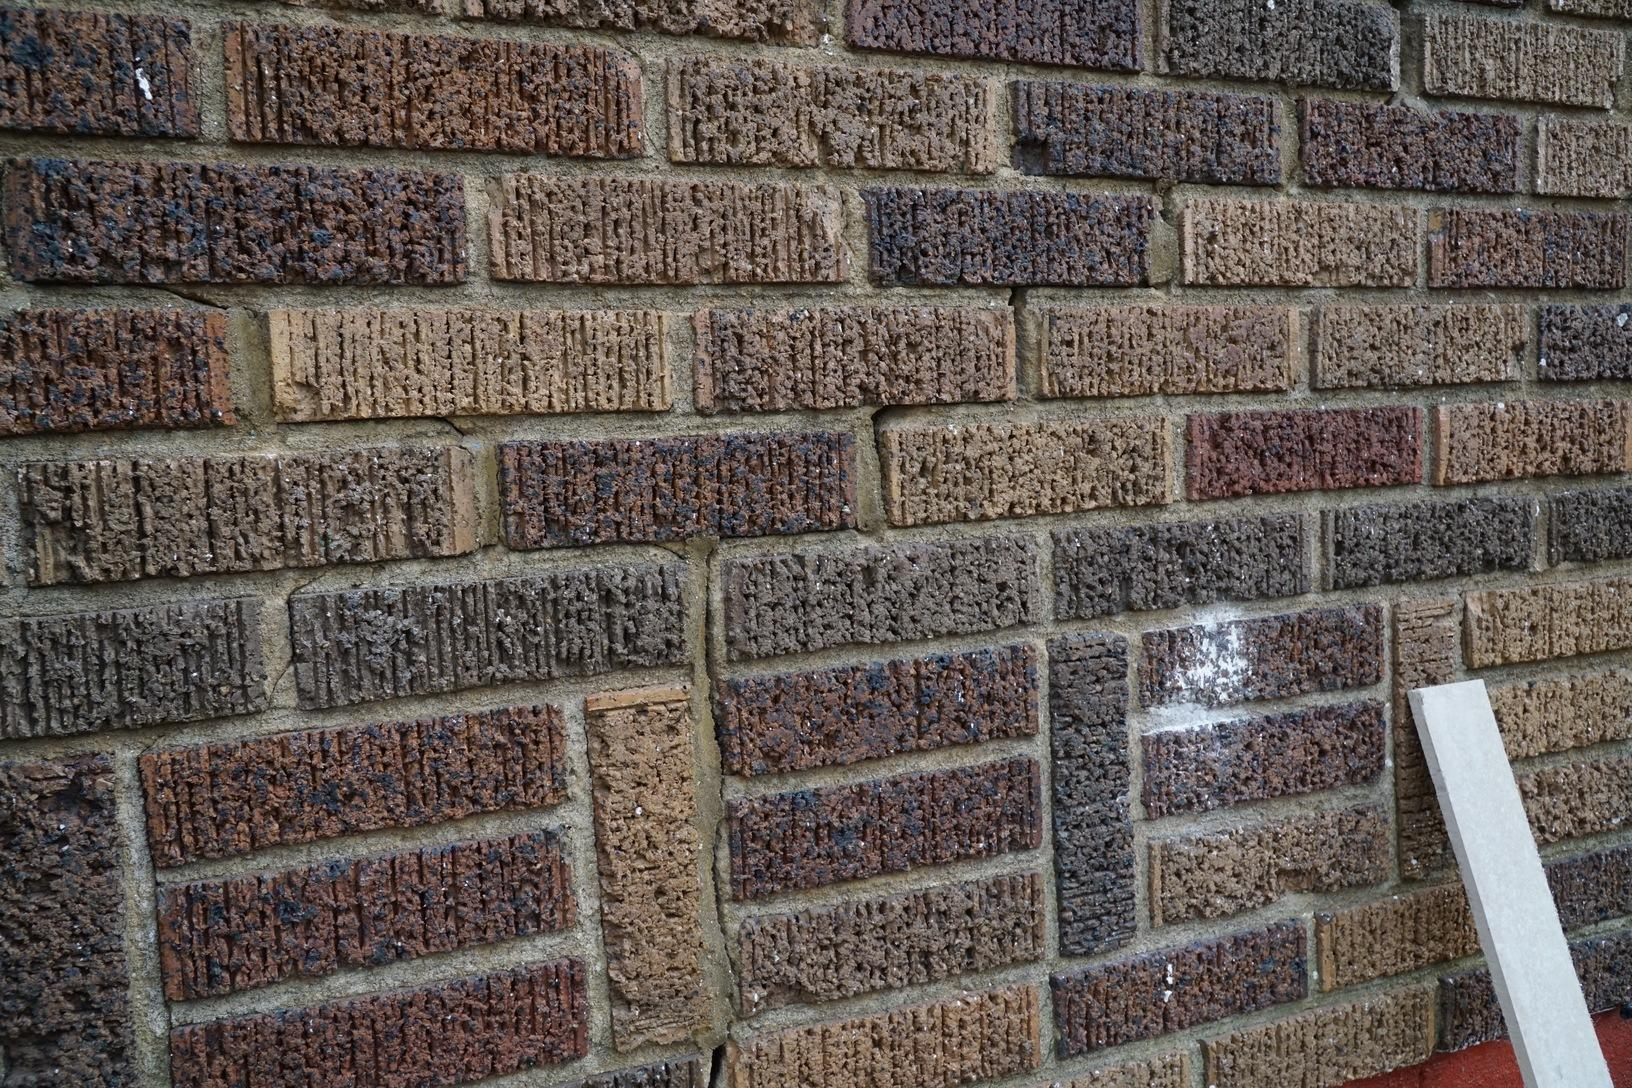 Stair step cracking in the brick exterior